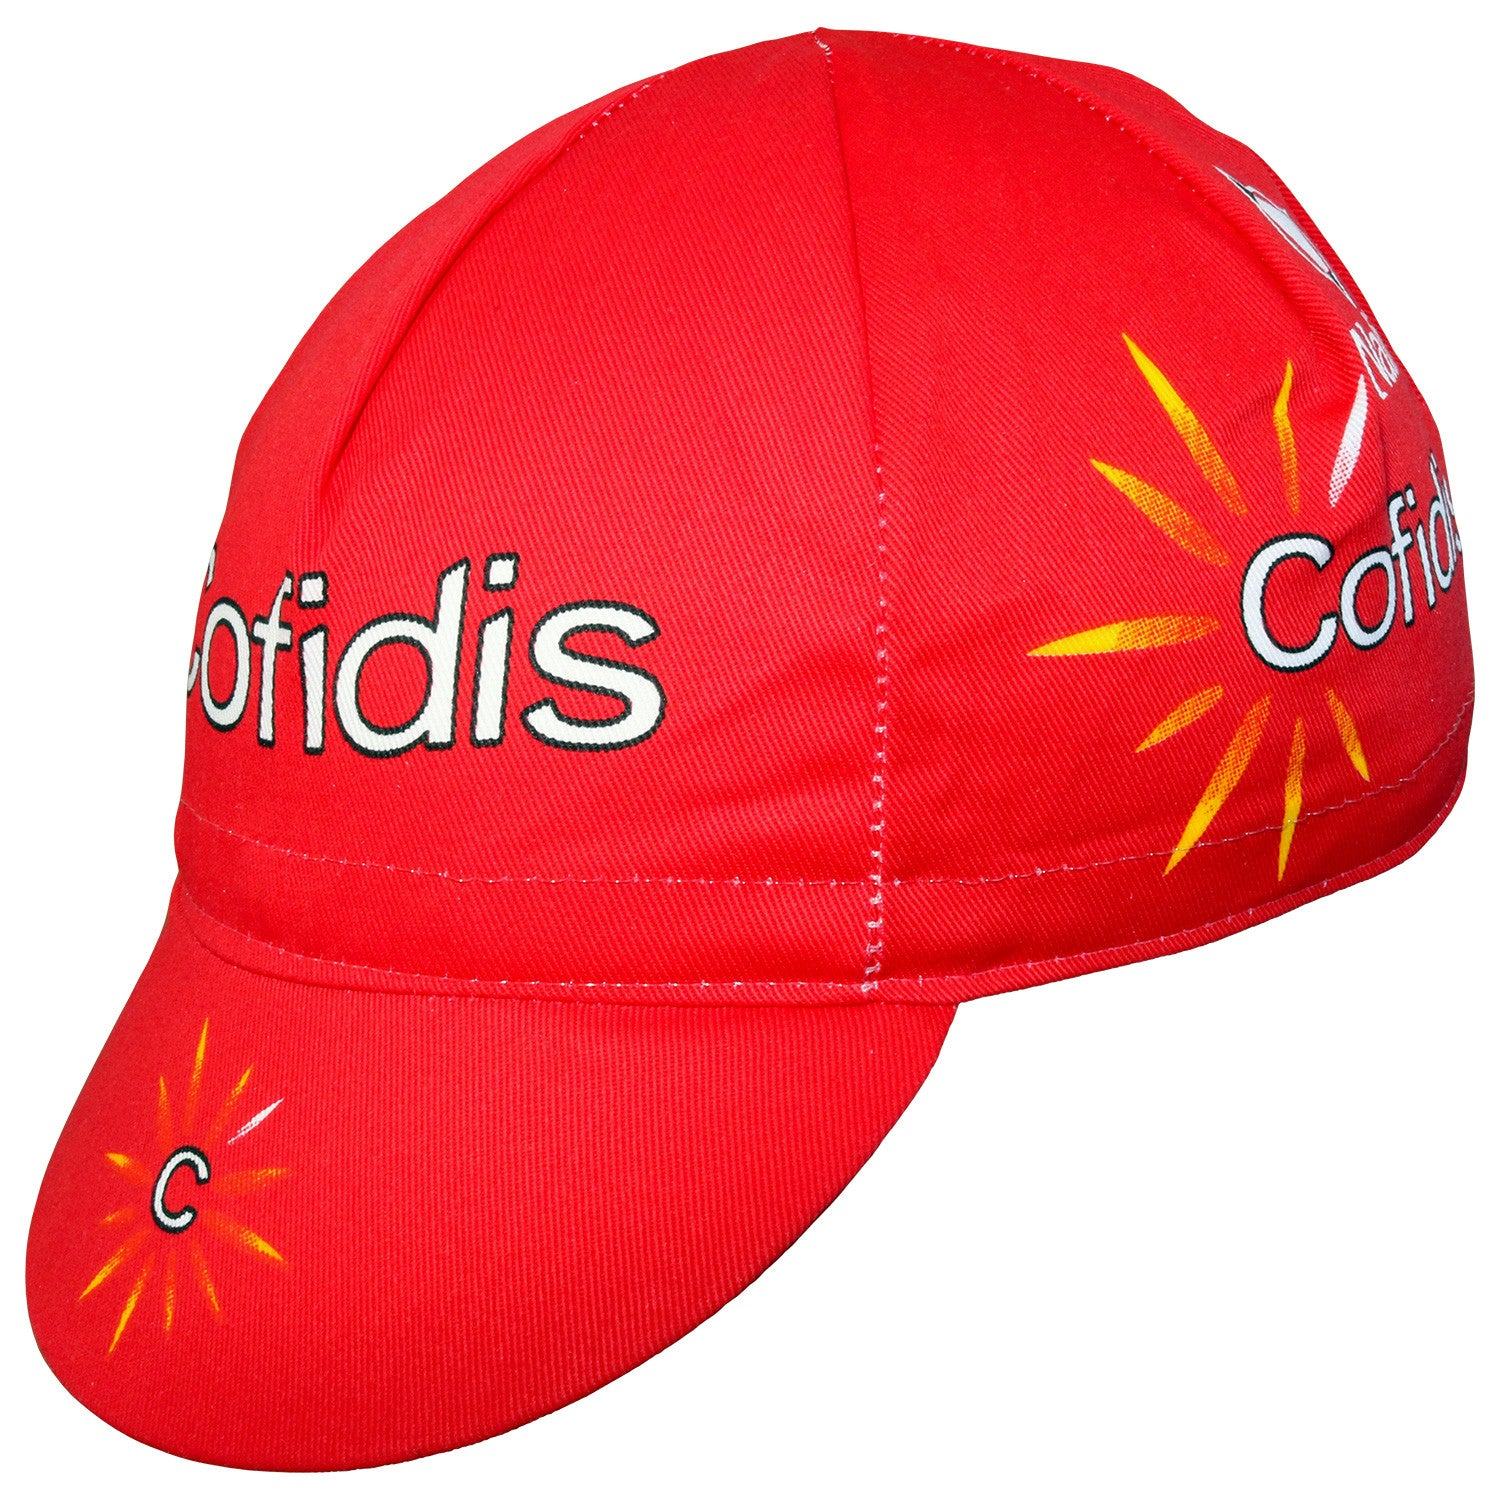 Cofidis Nalini 2012 Cotton Cycling Cap